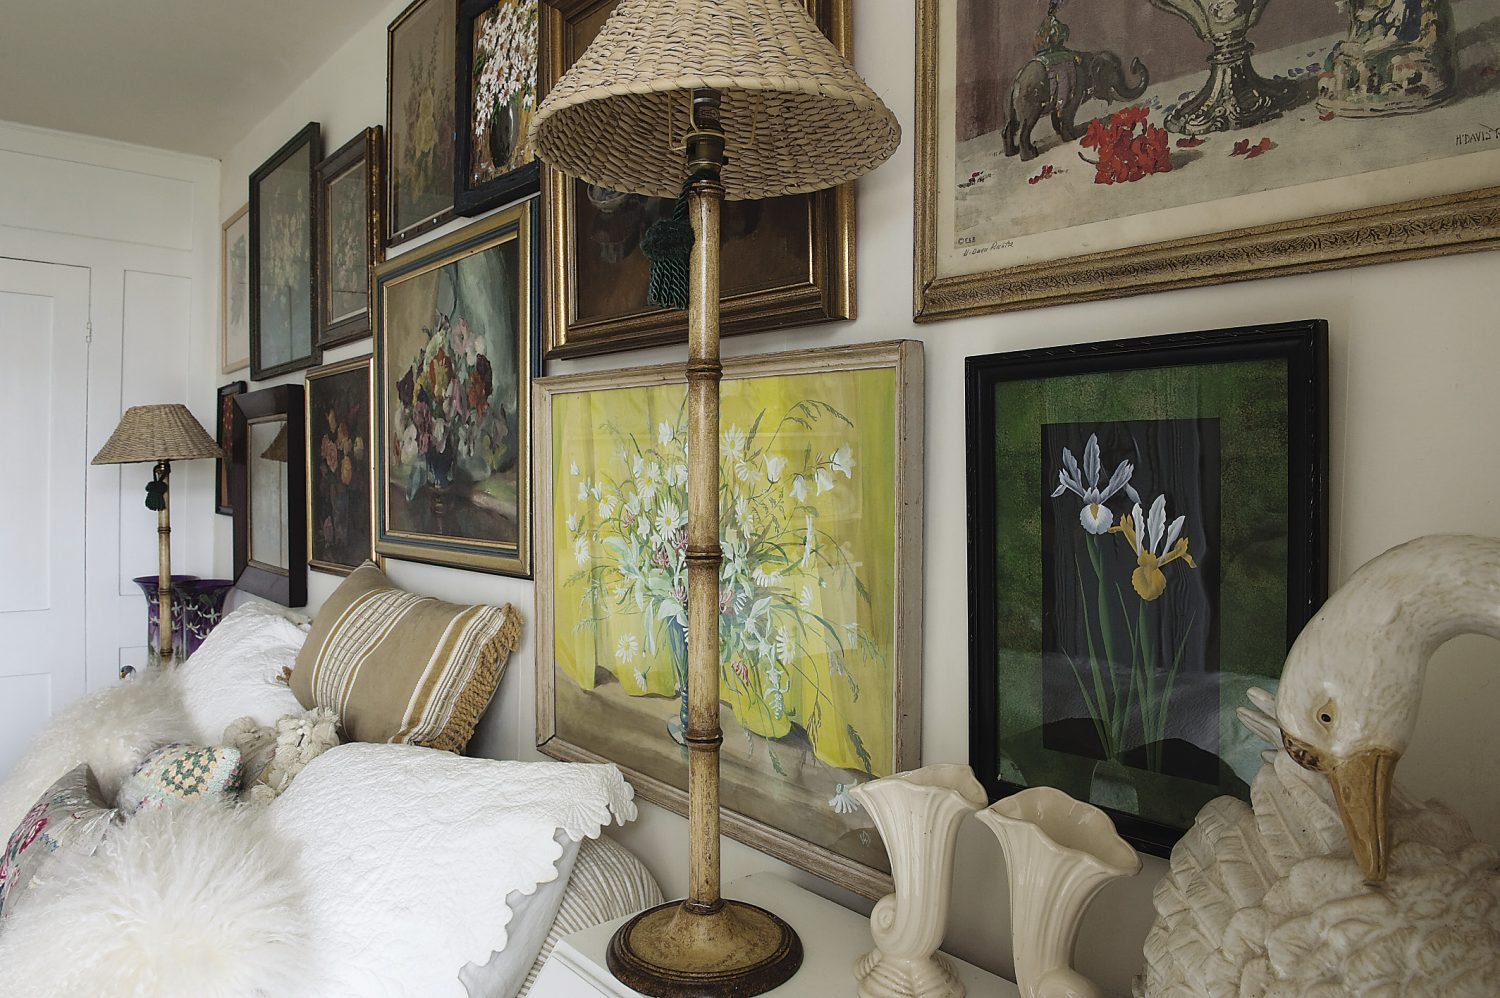 The wall above the bed is a joyful collection of oil and watercolour paintings of flowers